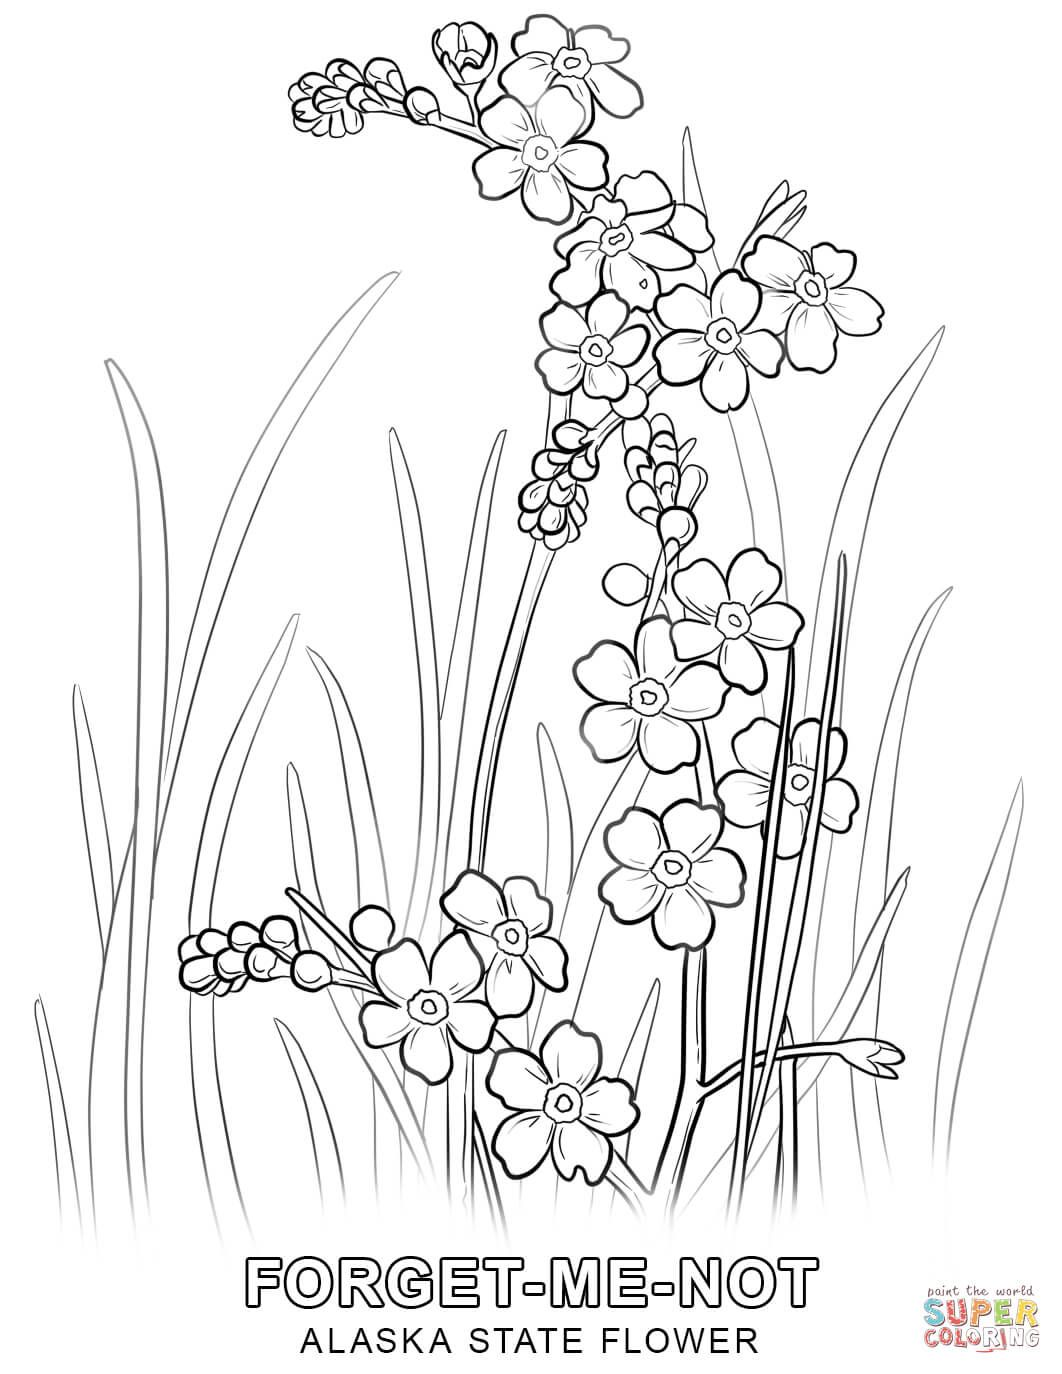 Alaska State Flower Coloring Page Free Printable Coloring Pages